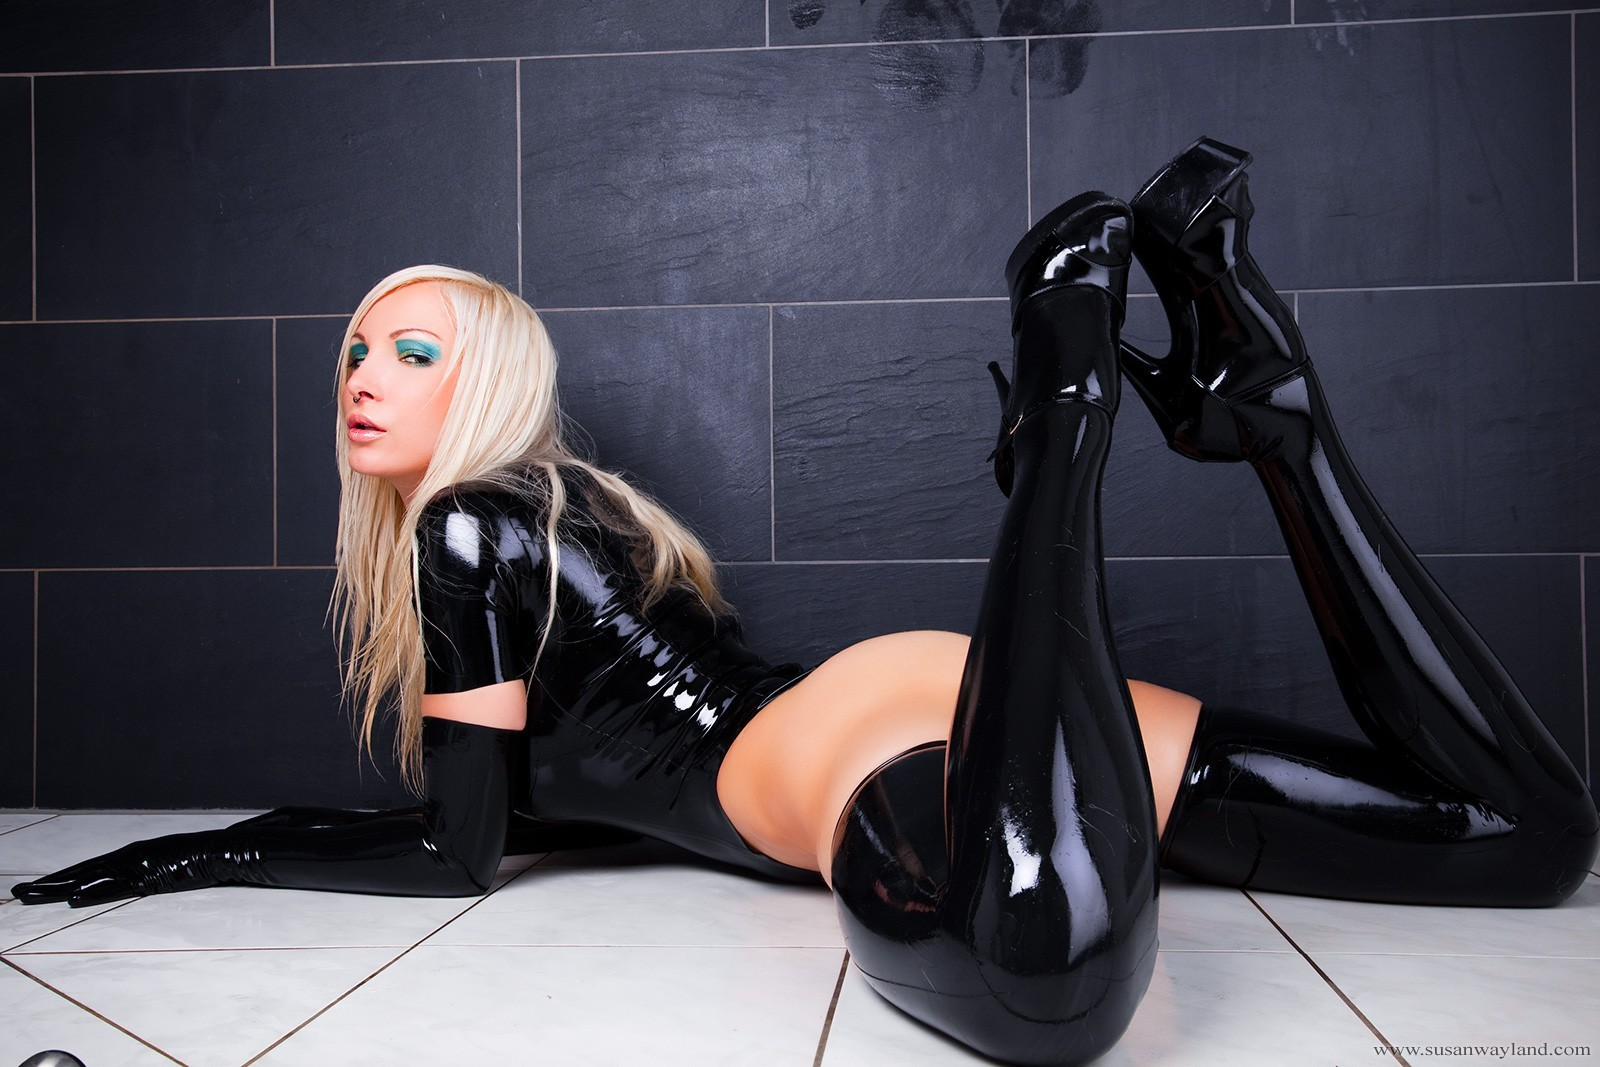 woman latex Susan Wayland HD Wallpaper